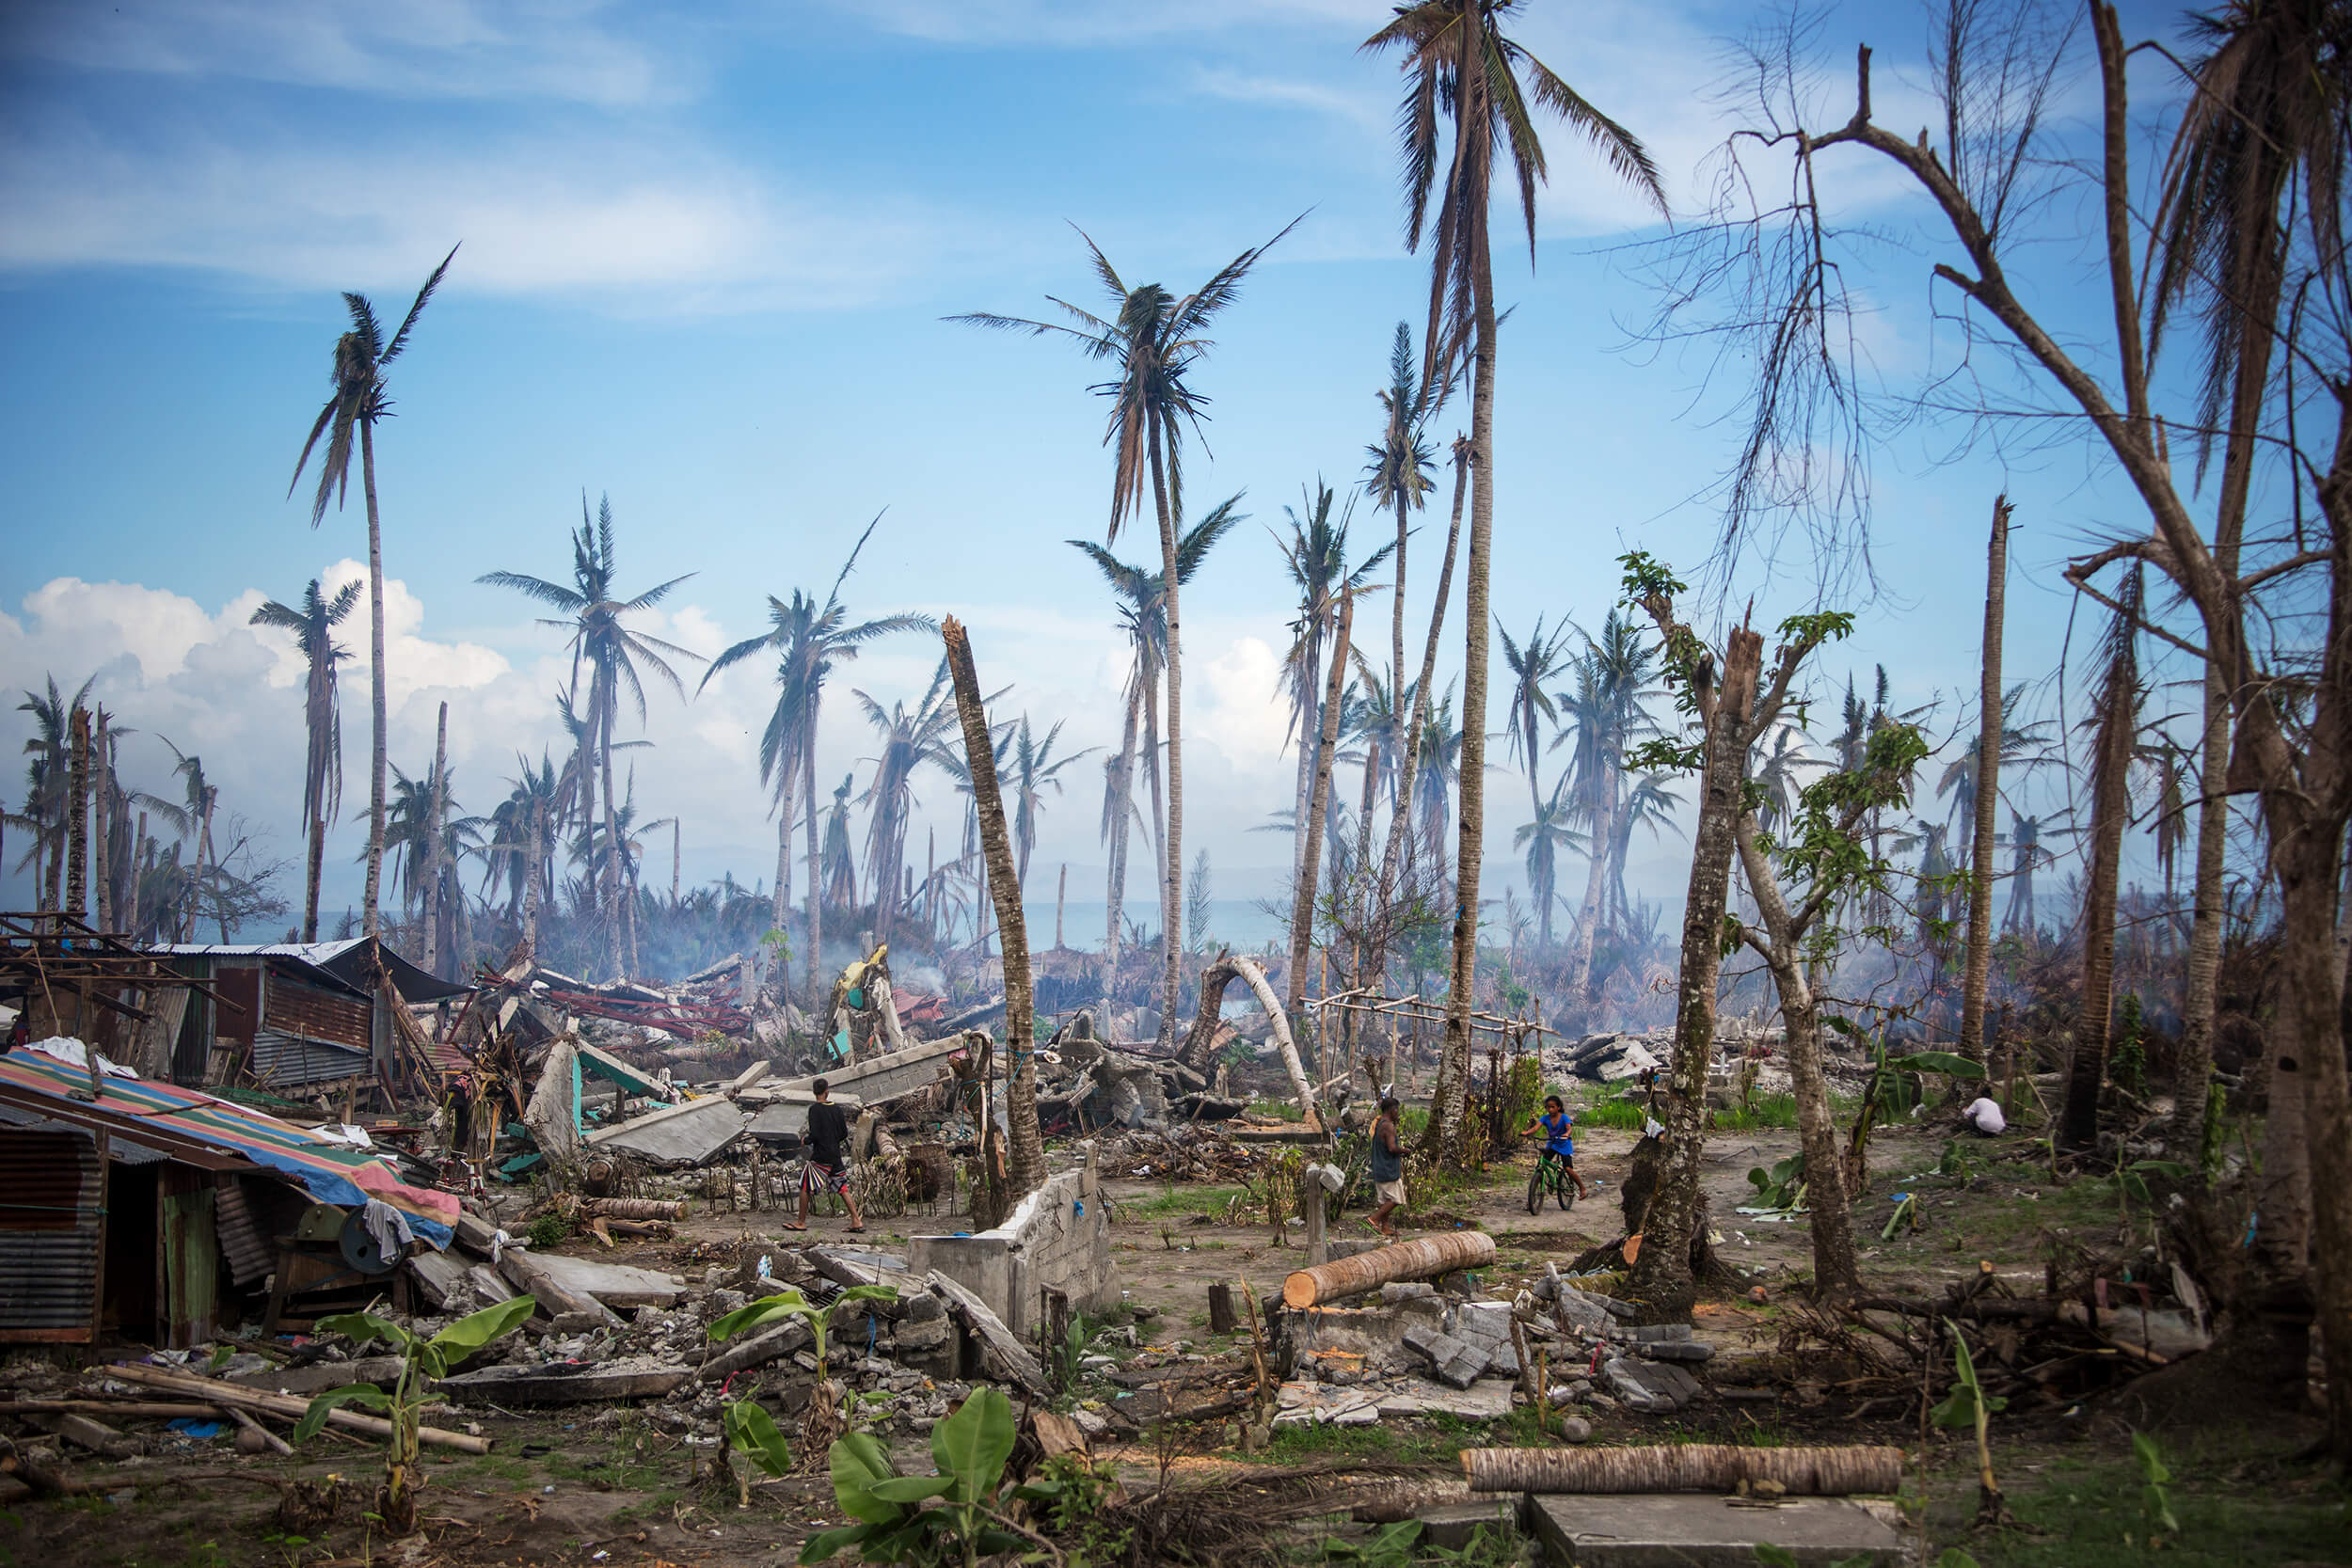 Philippines after Typhoon Haiyan November 2013.